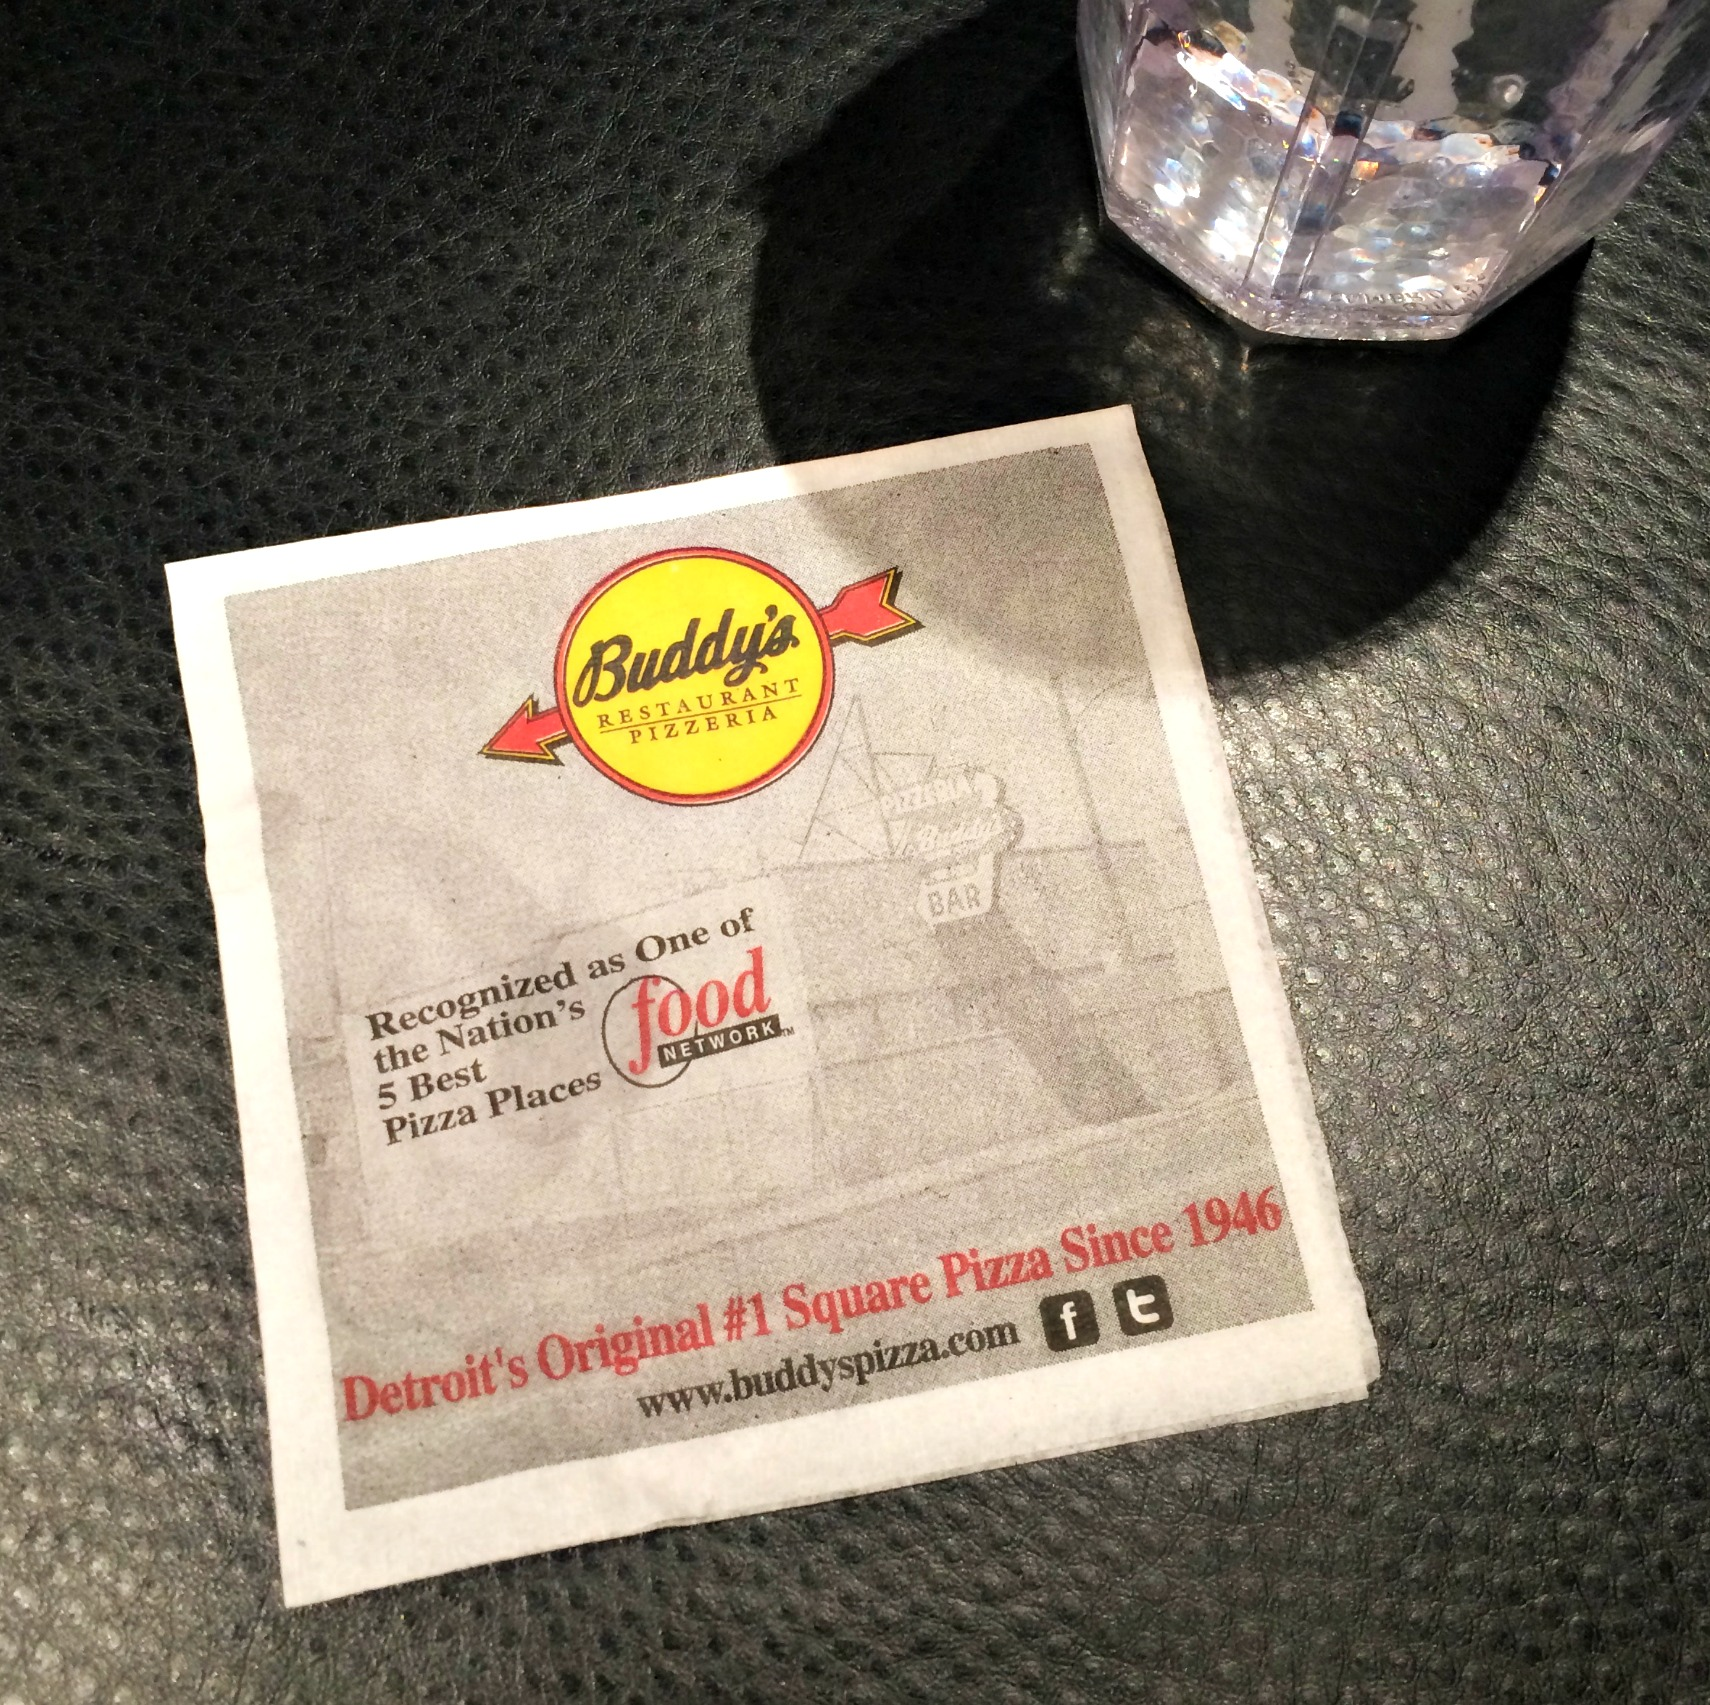 Buddy's Pizzeria 5 best pizza places food network